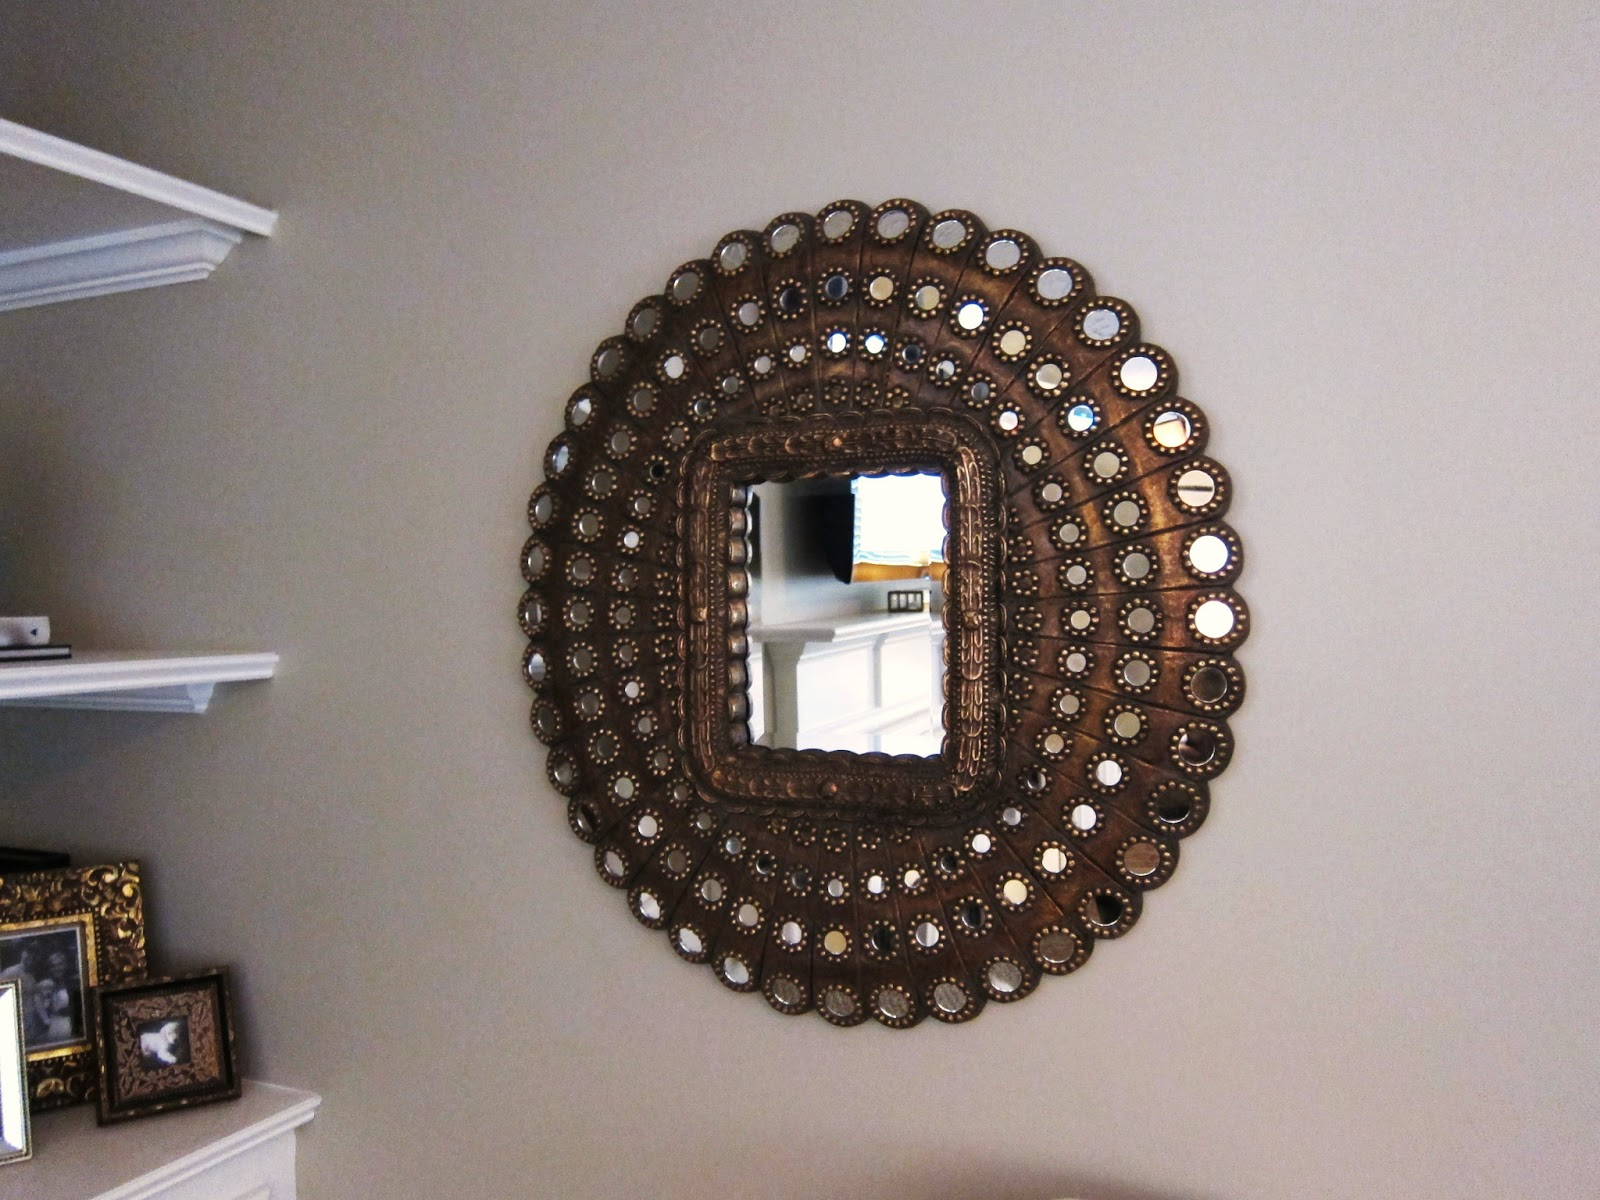 Decorating With Mirrors tiffanyd: decorating with mirrors and mirrored furniture at my